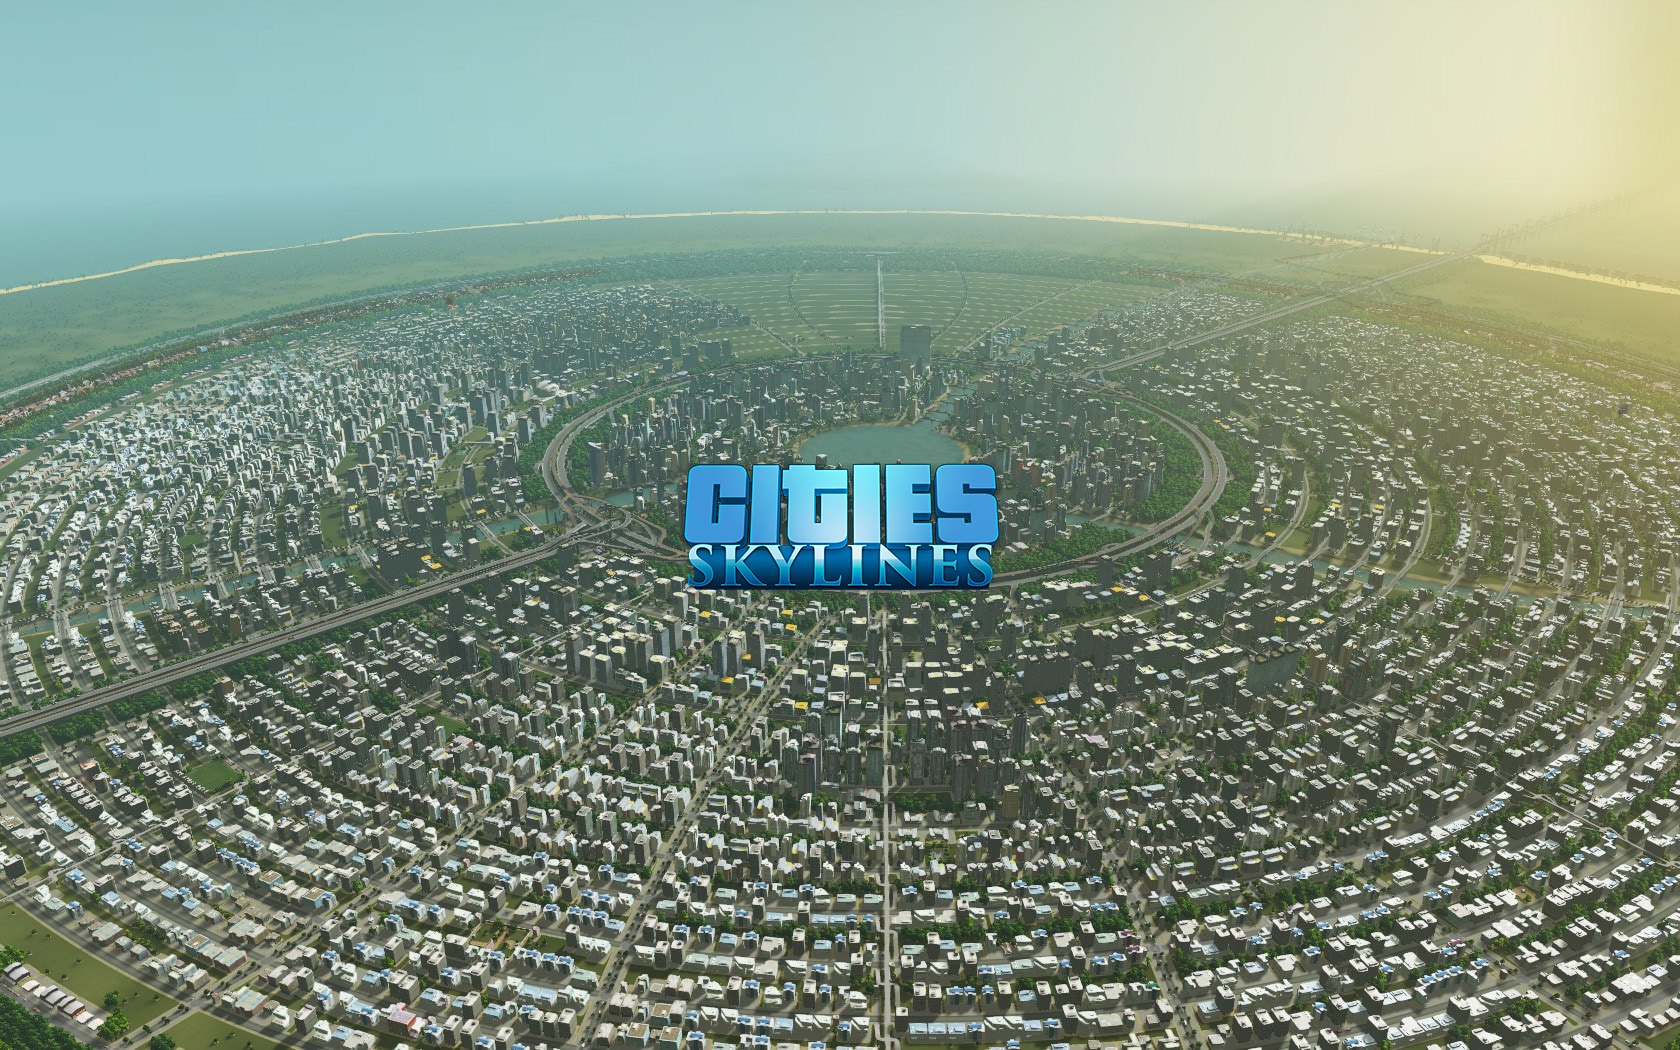 10 Insane Cities Skylines Intersections And Road Configurations BC GB